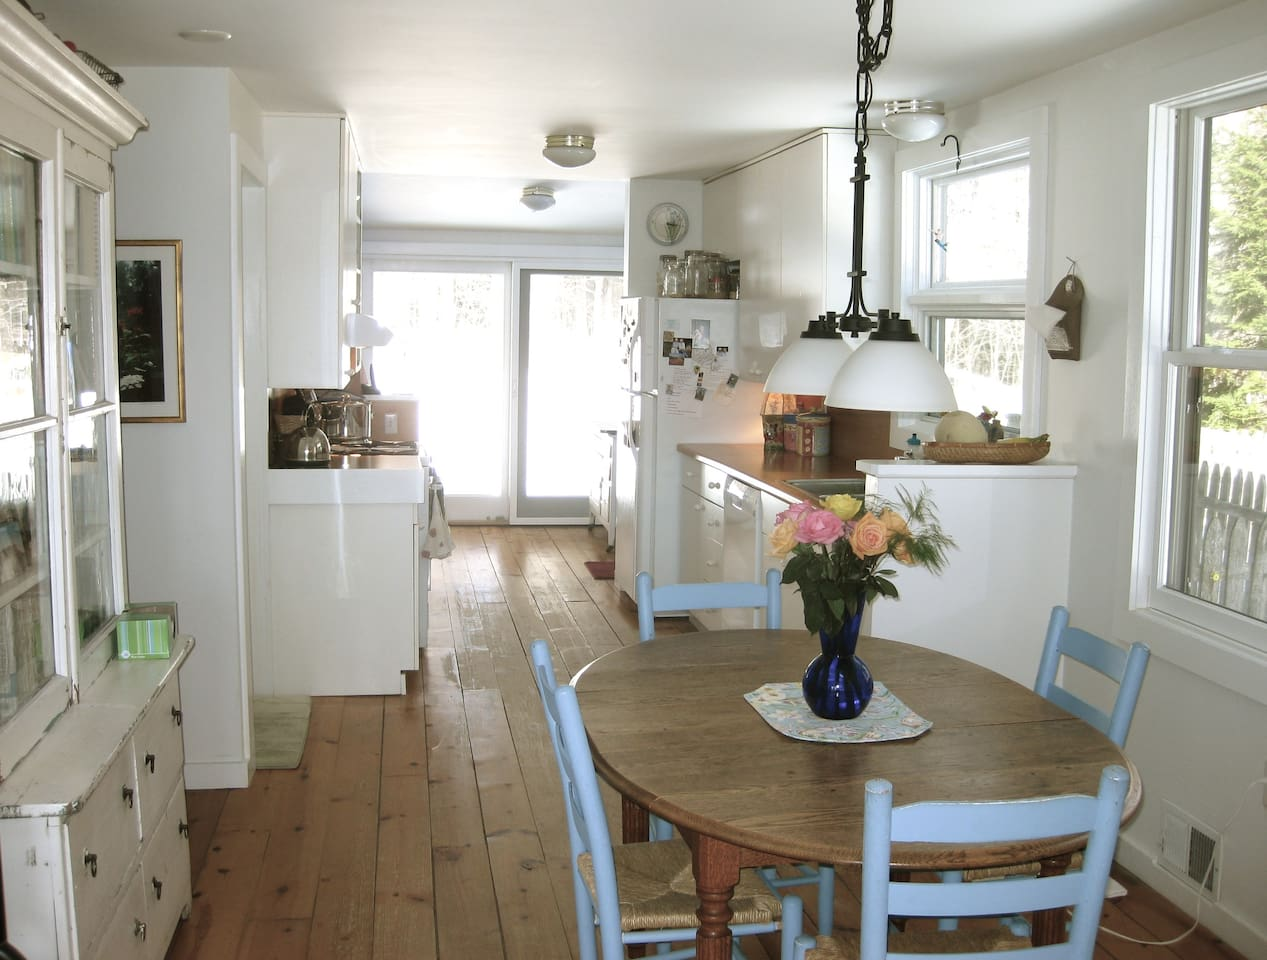 Sunny and spacious dining/kitchen area.